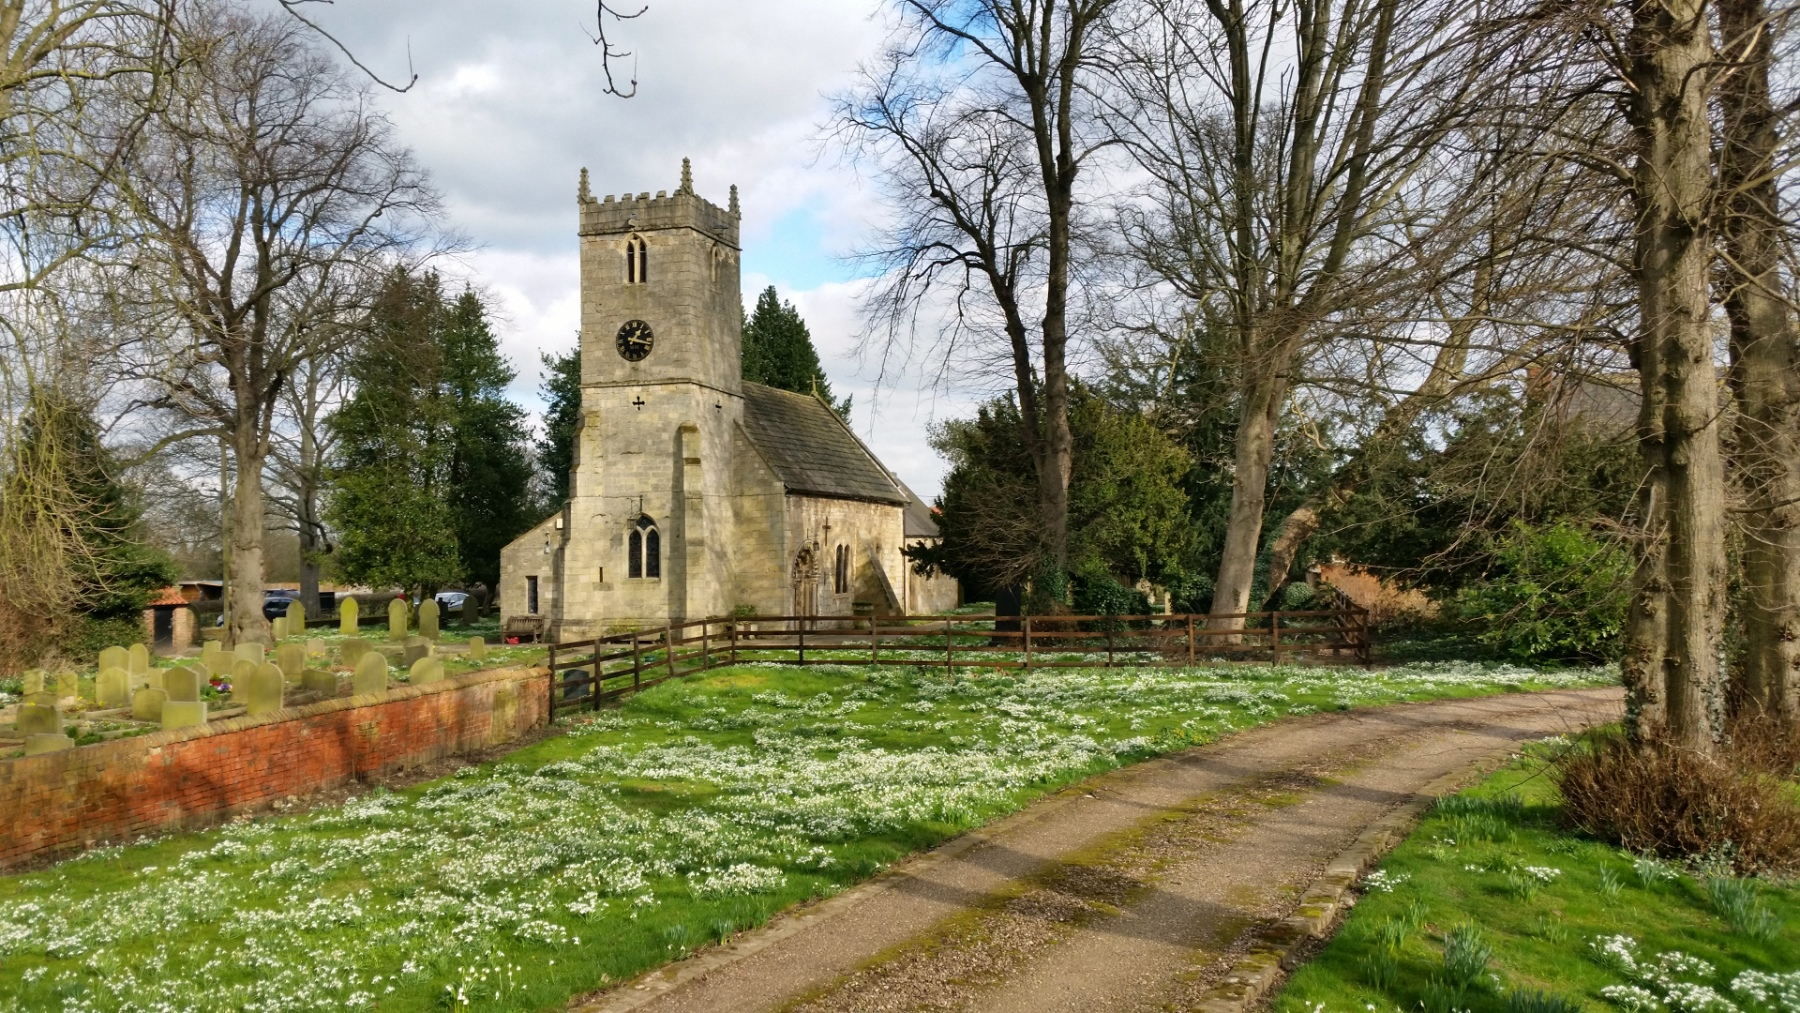 Snowdrops at Kirk Bramwith Church, 26 Feb 2021